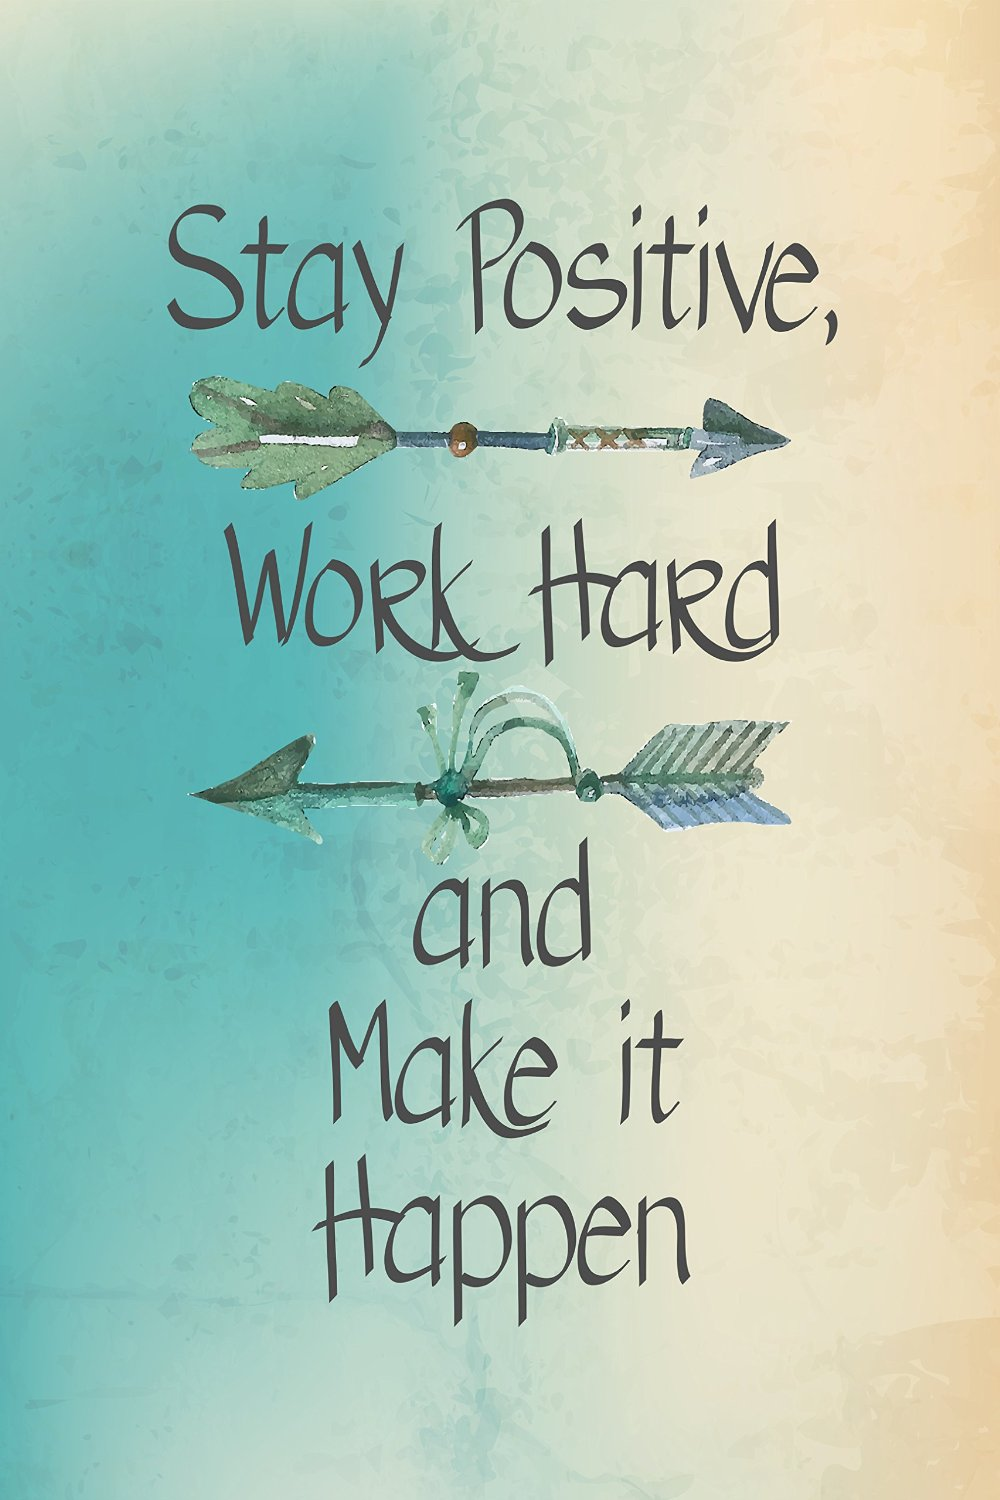 Stay Positive Work Hard Motivational Daily Quotes Sayings Pictures